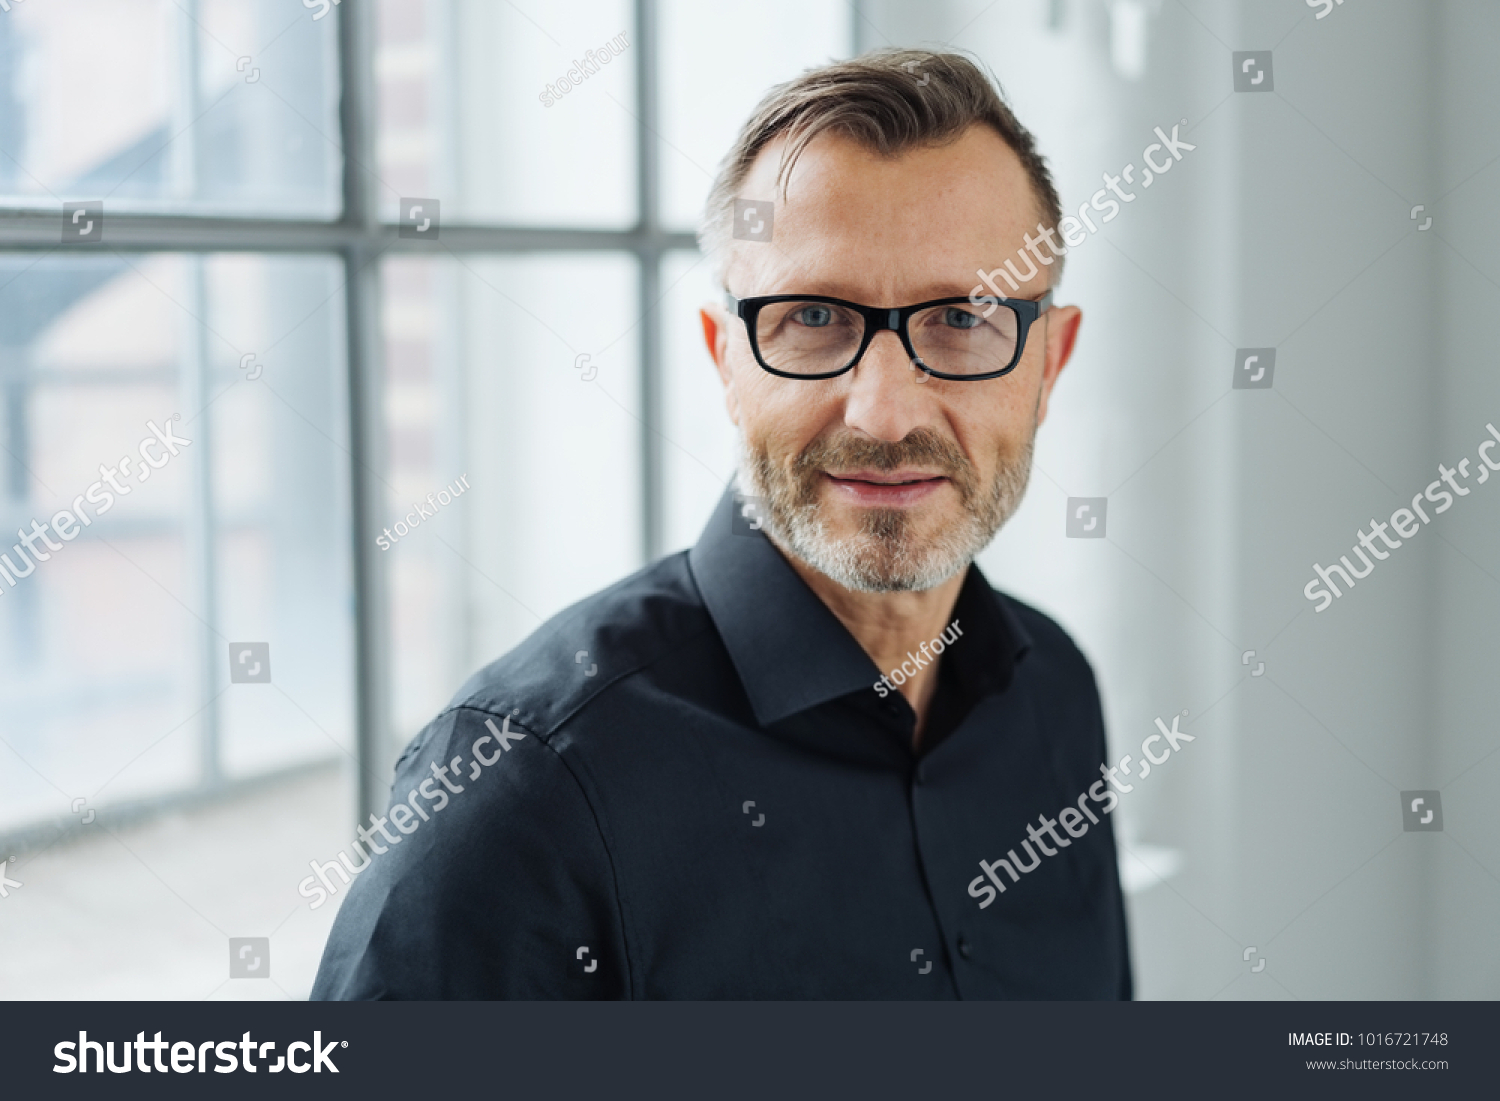 Close-up portrait of a middle-aged man wearing black shirt and eyeglasses while looking at camera with confidence in the office #1016721748